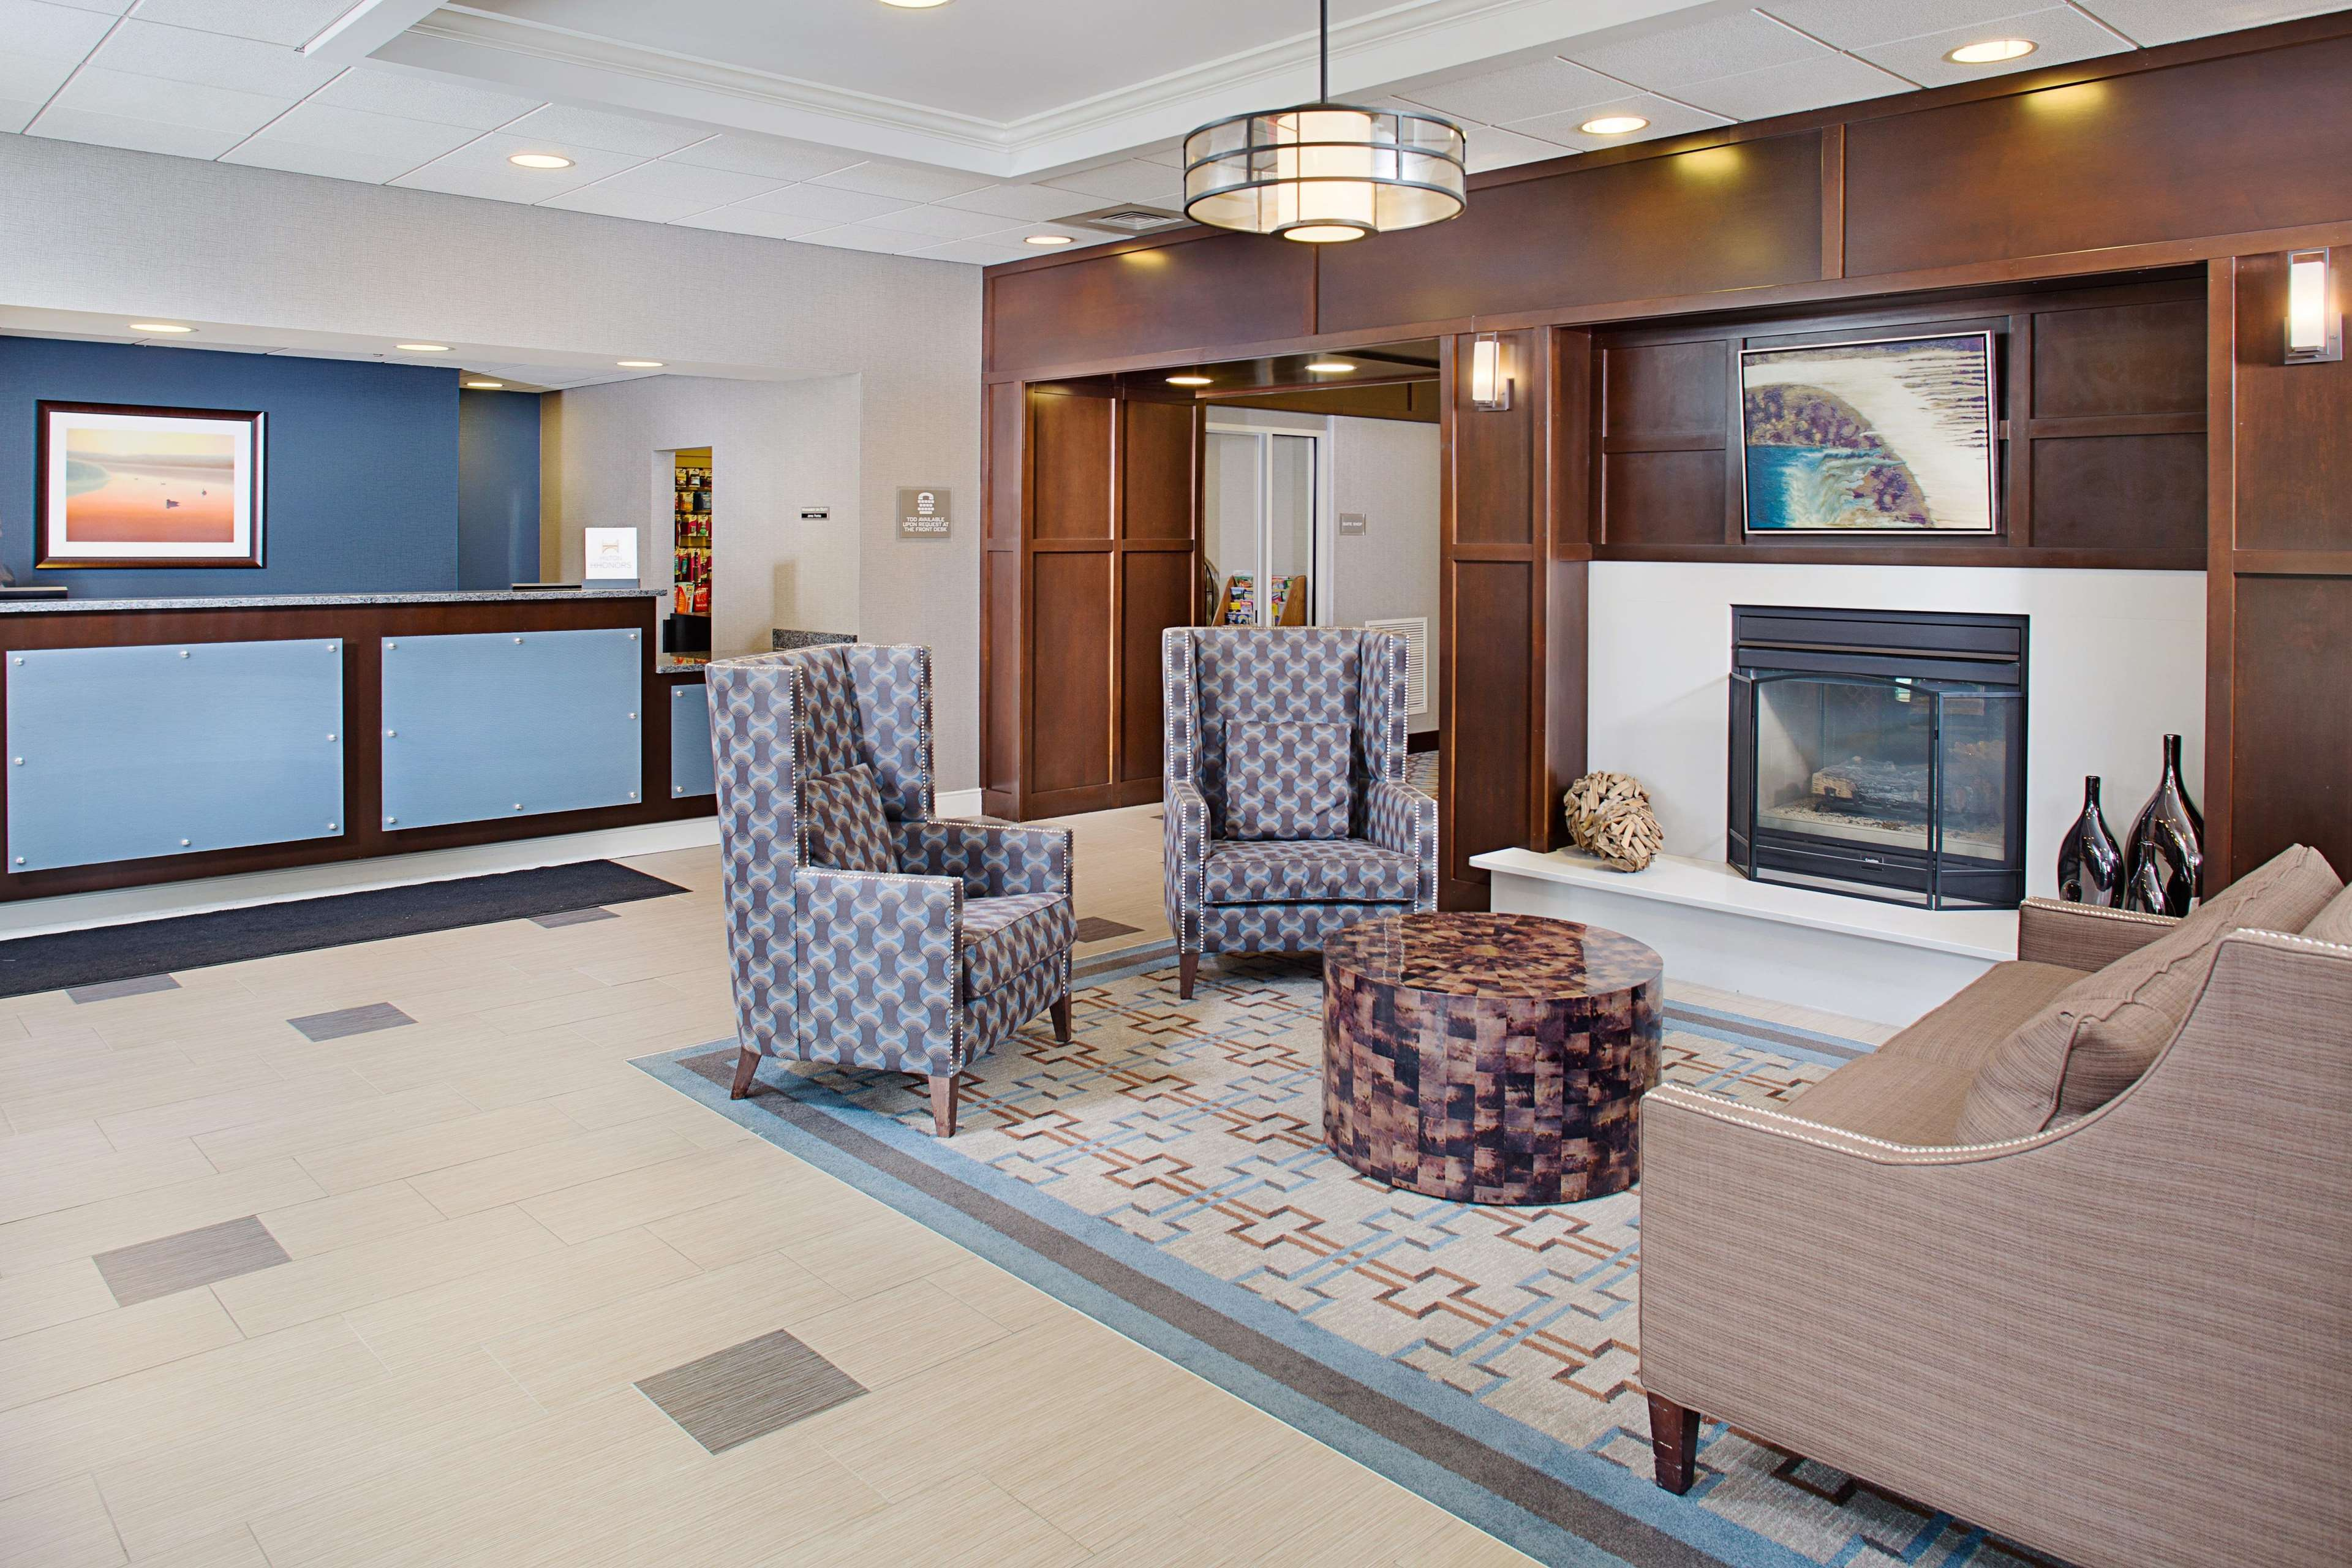 Homewood Suites by Hilton Manchester/Airport image 1